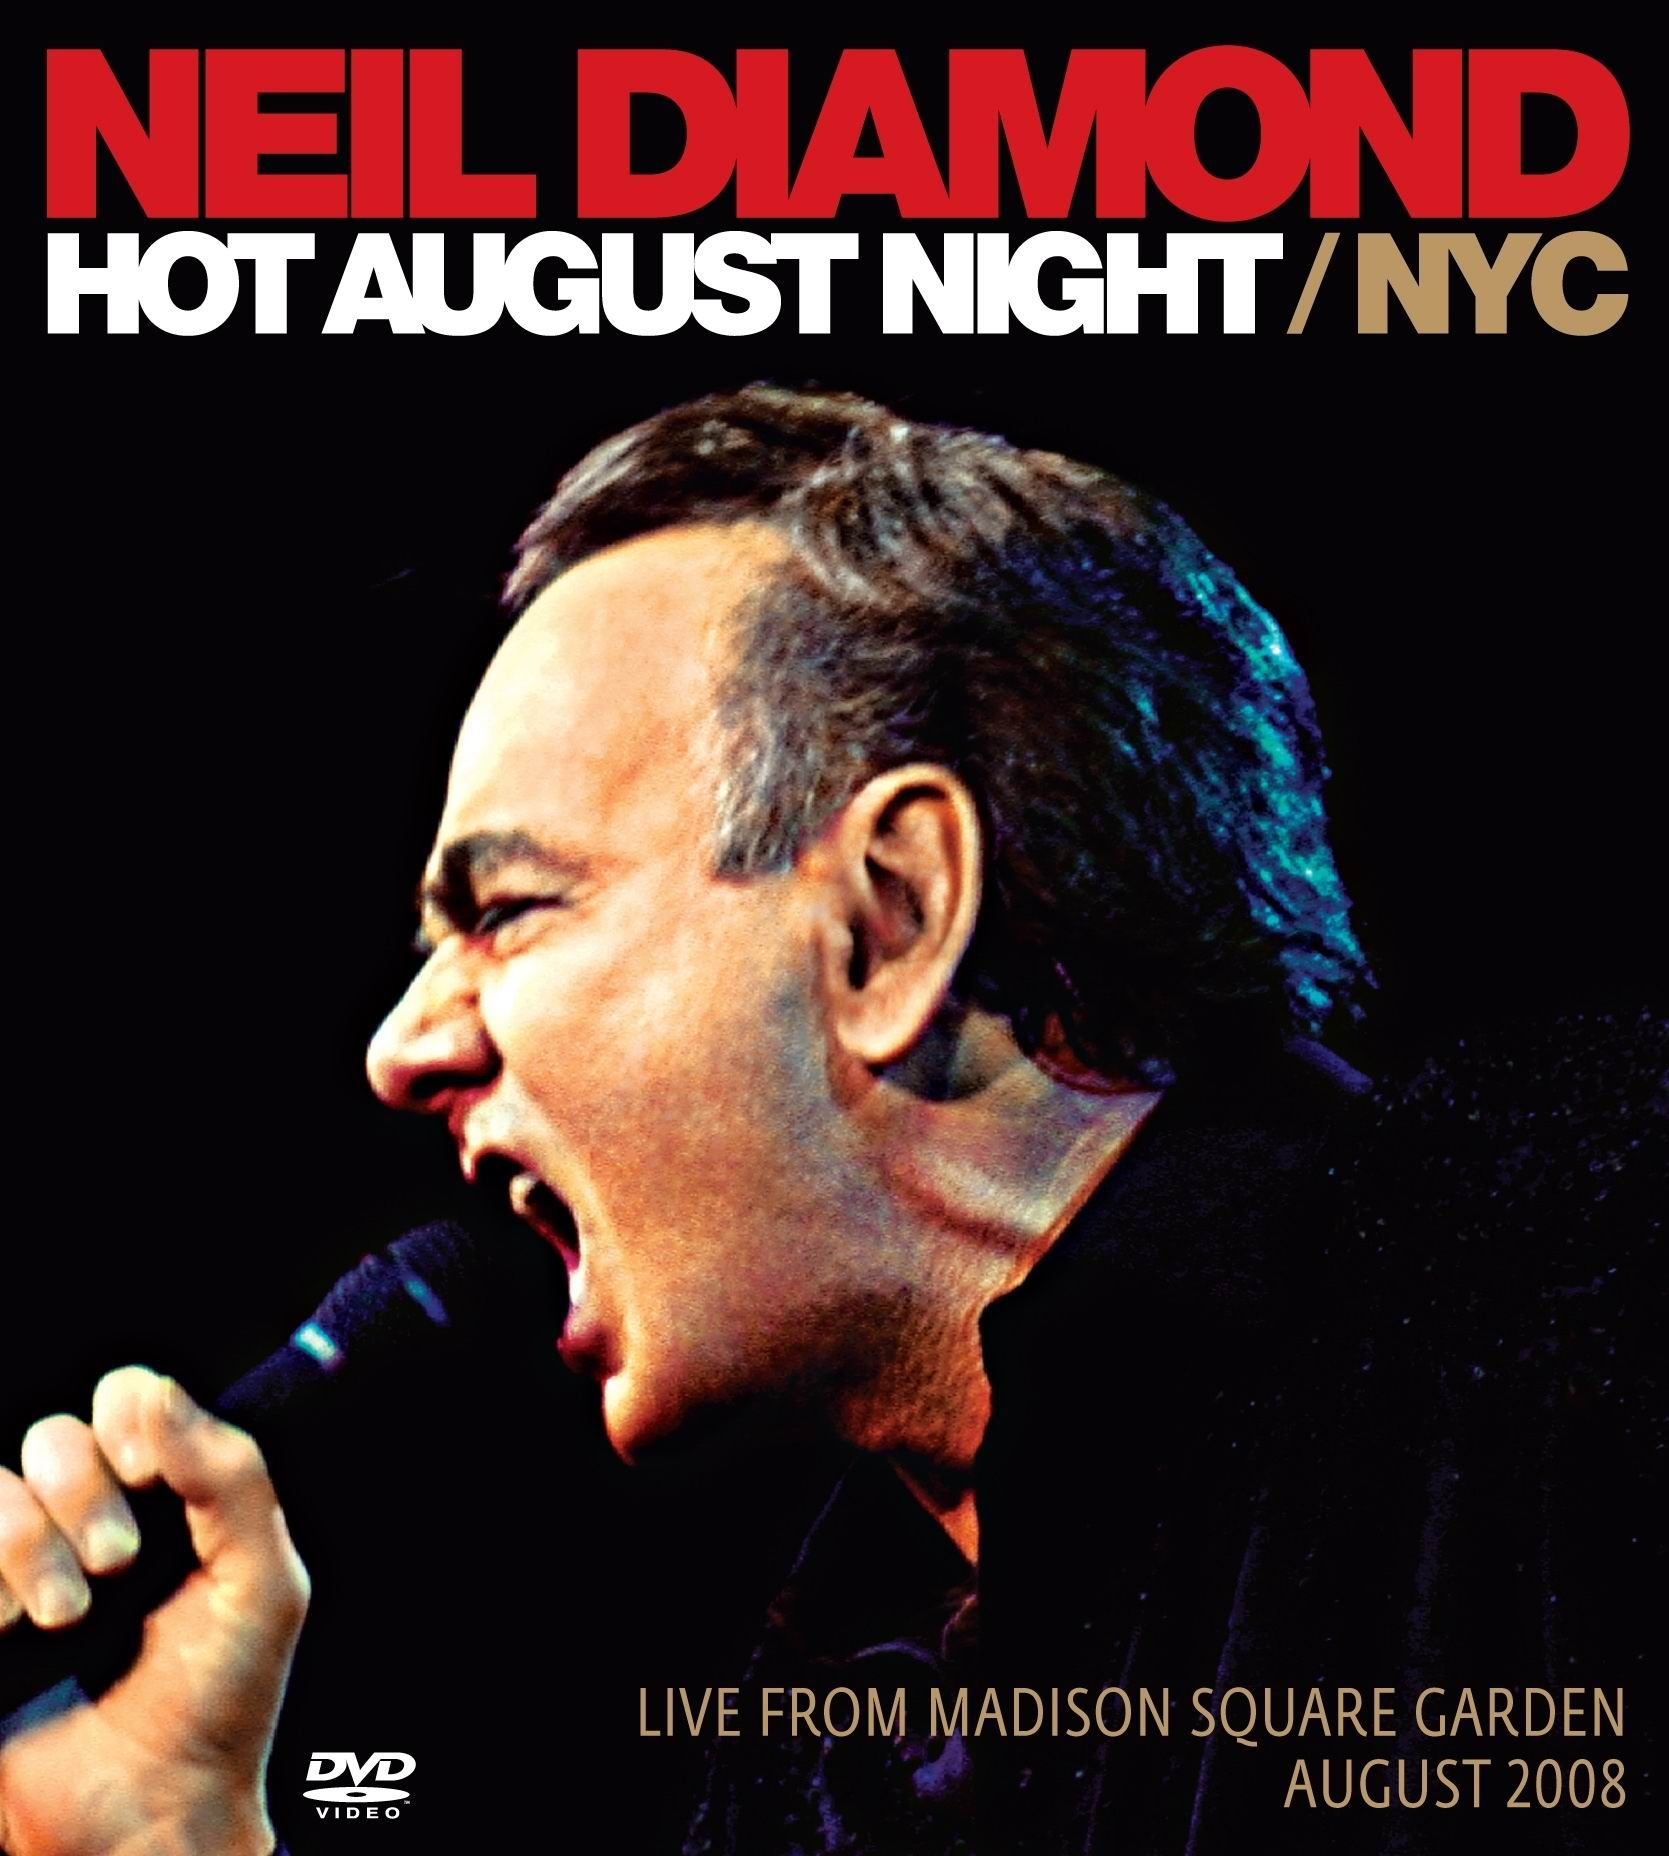 Neil Diamond - Hot August Night / Nyc album cover